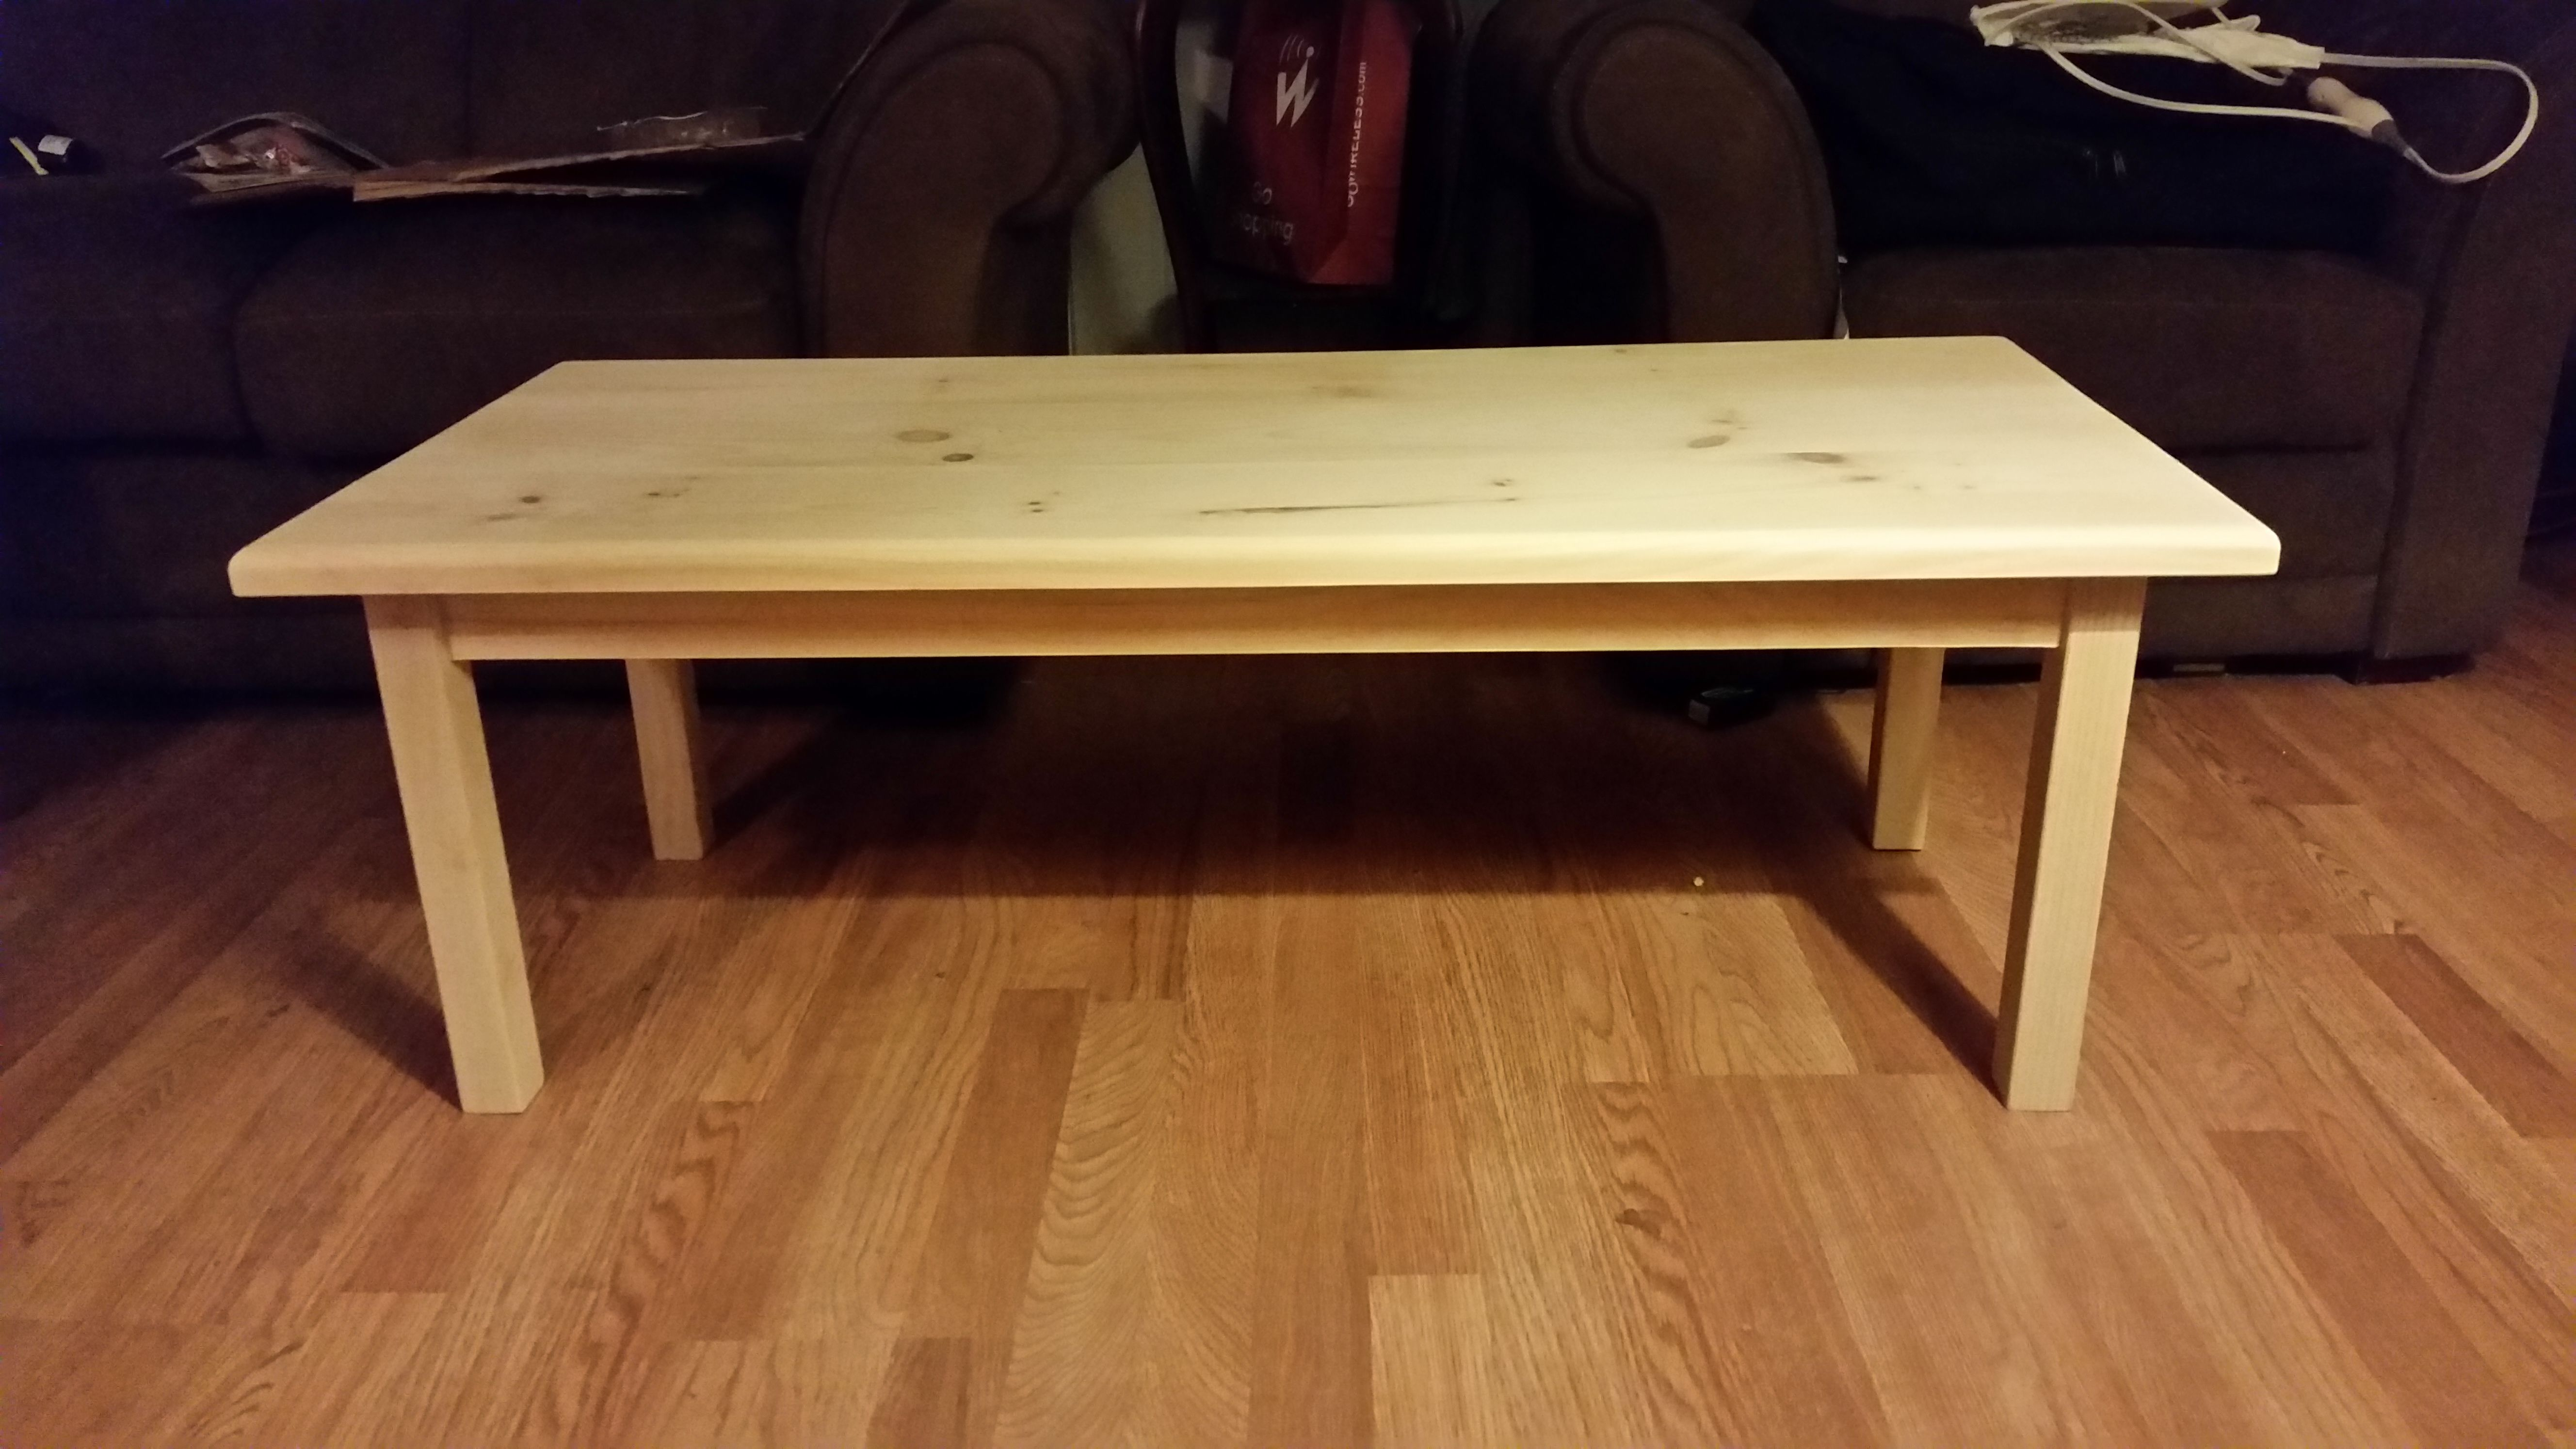 buy a custom unfinished pine coffee table made to order. Black Bedroom Furniture Sets. Home Design Ideas